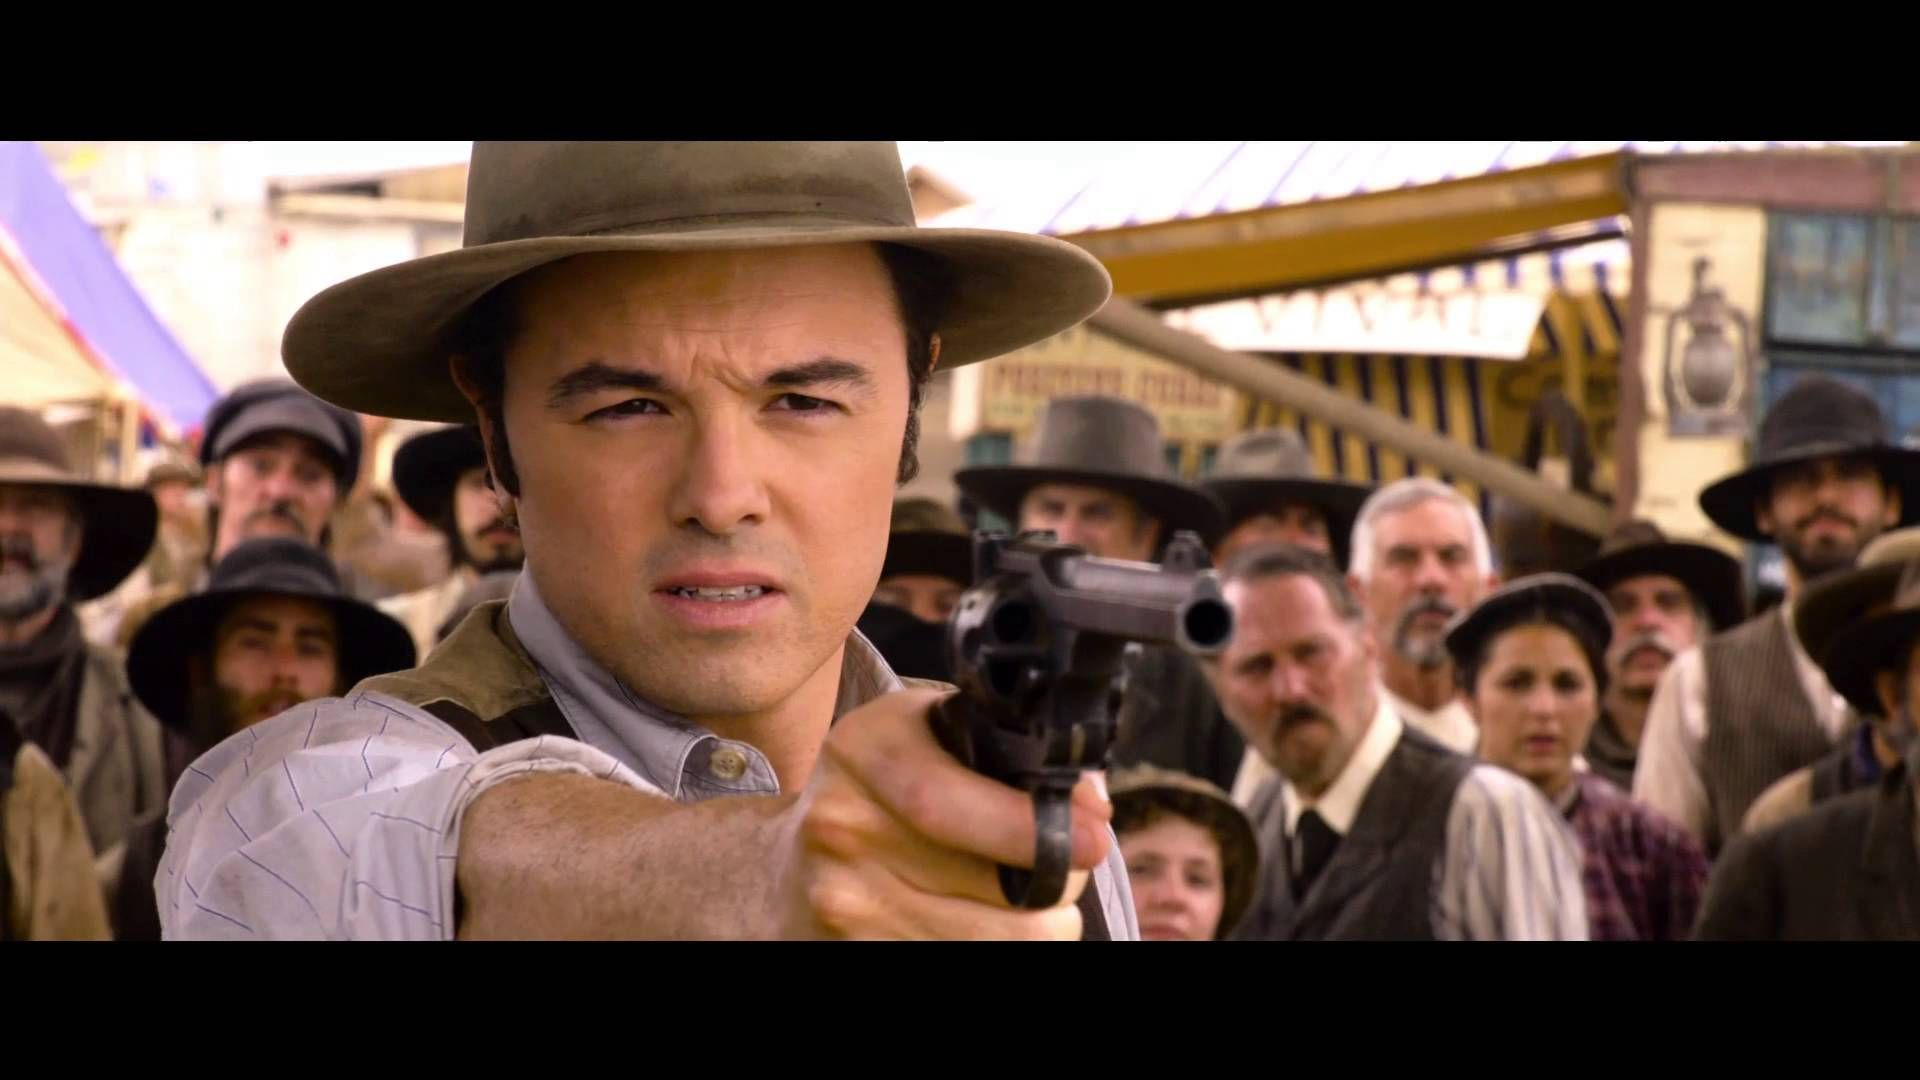 A Million Ways To Die In The West Stream Ponle El Ojo A Este Estreno Cinematografico A Million Ways To Die In The West Western Dirigida Por El Talentoso Seth Macfarlane Quien Ademas Pro Weste Blog